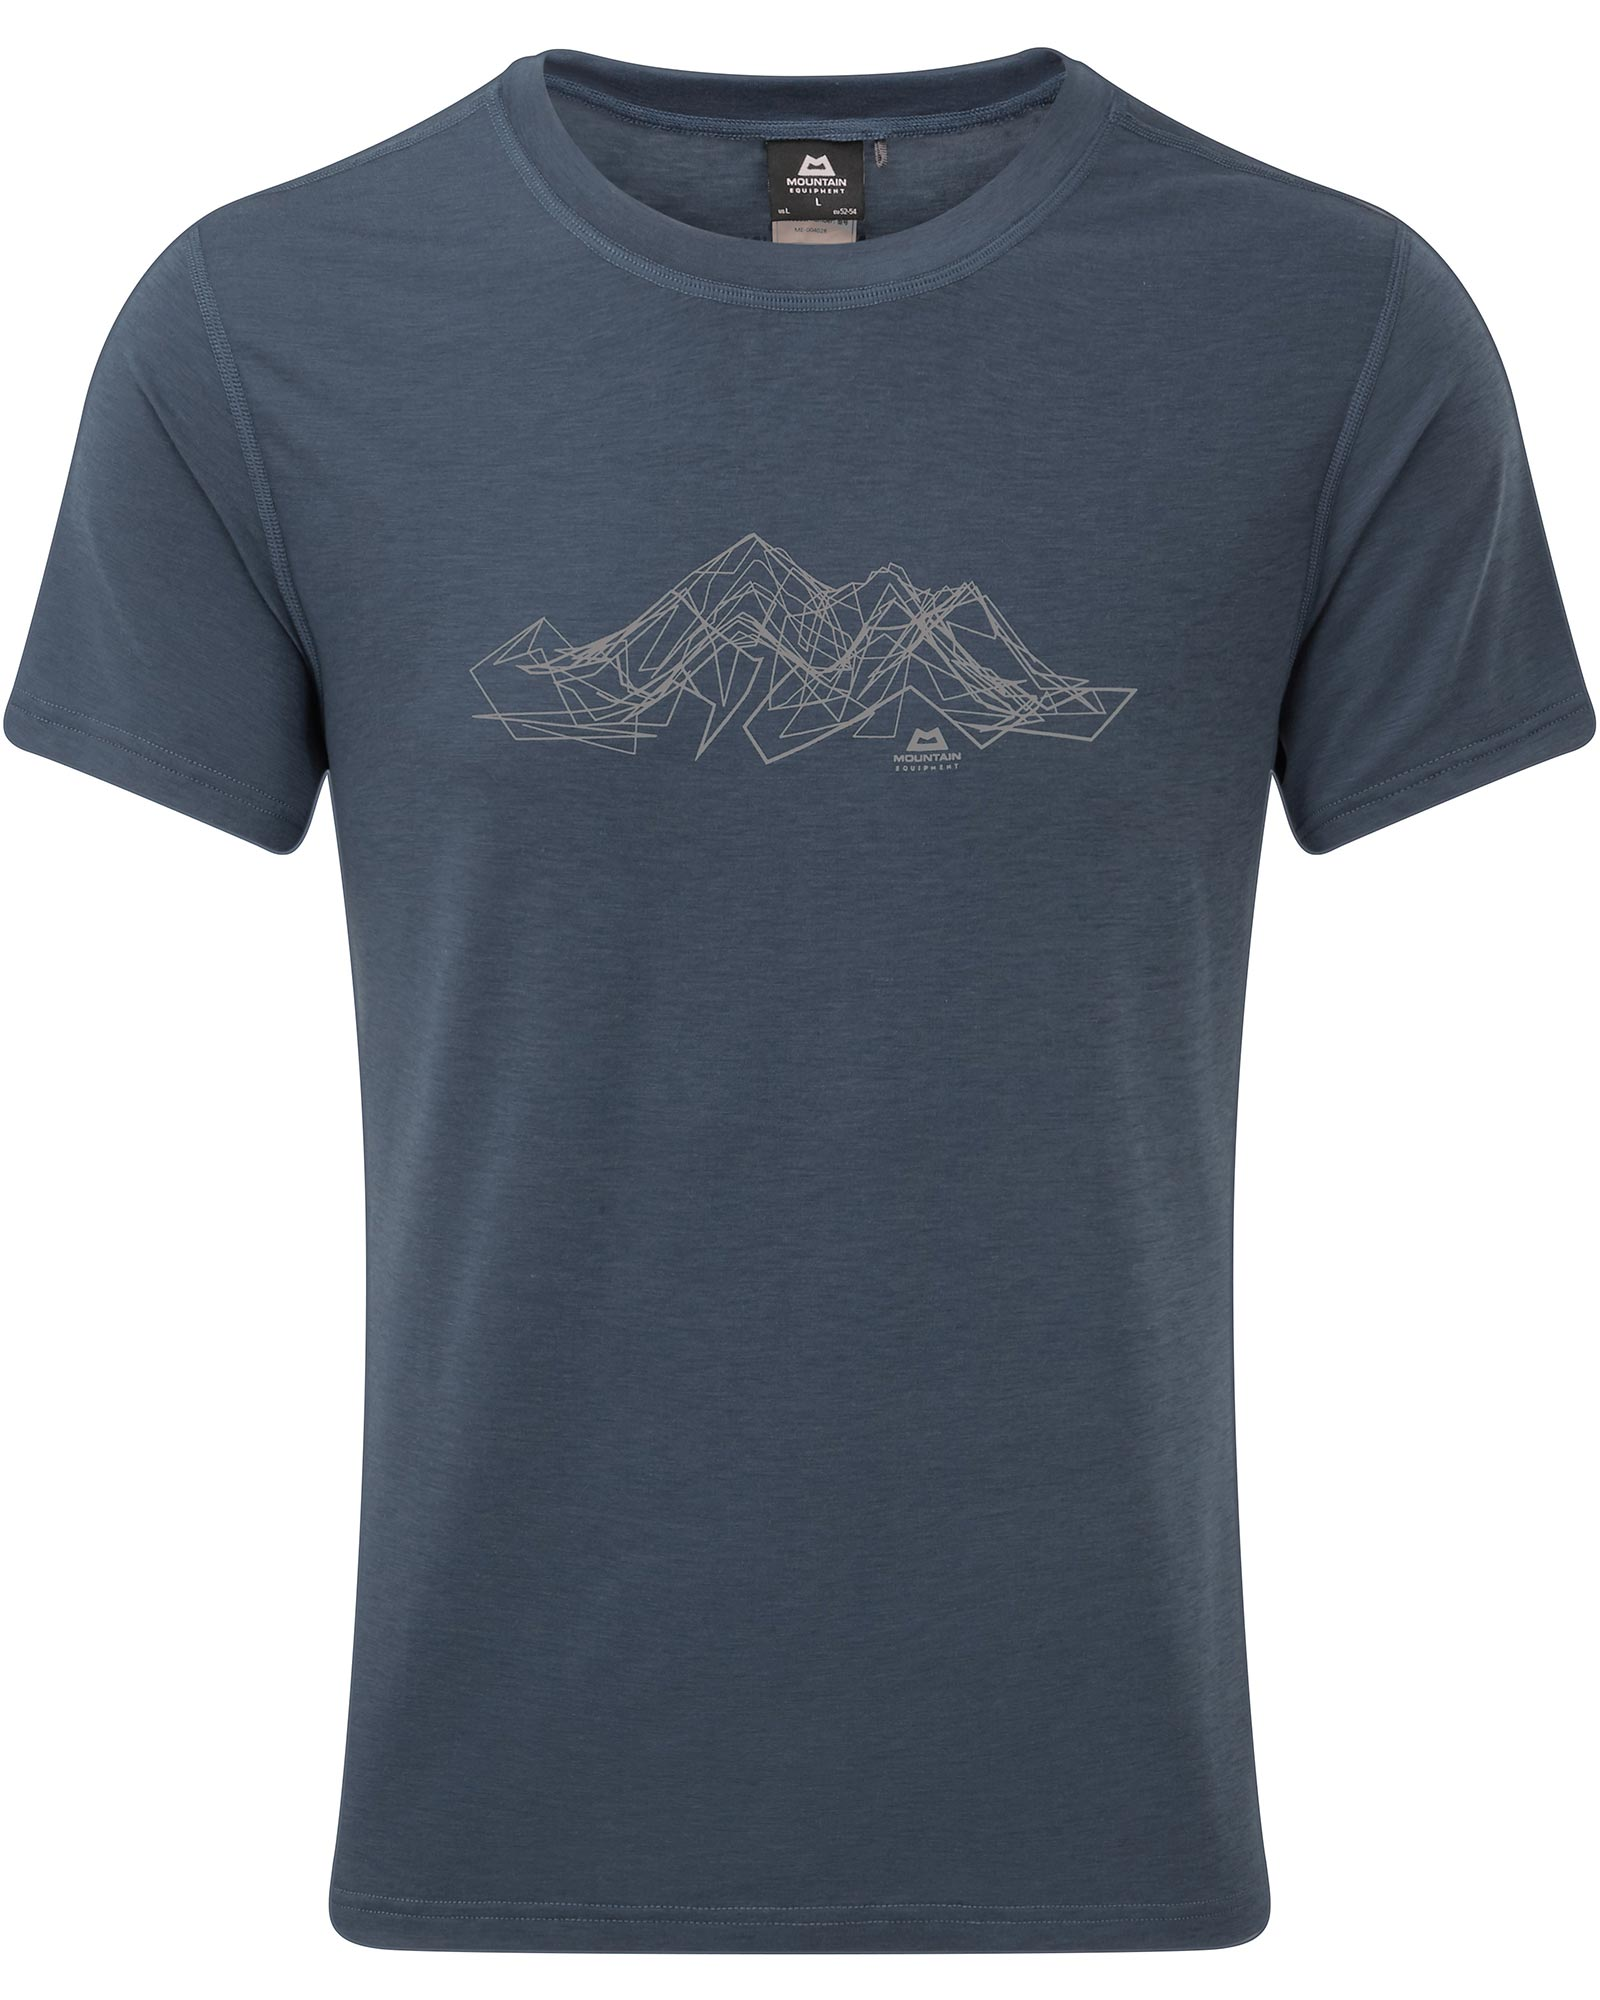 Mountain Equipment Mens S/s Ground Up Mountain T-shirt